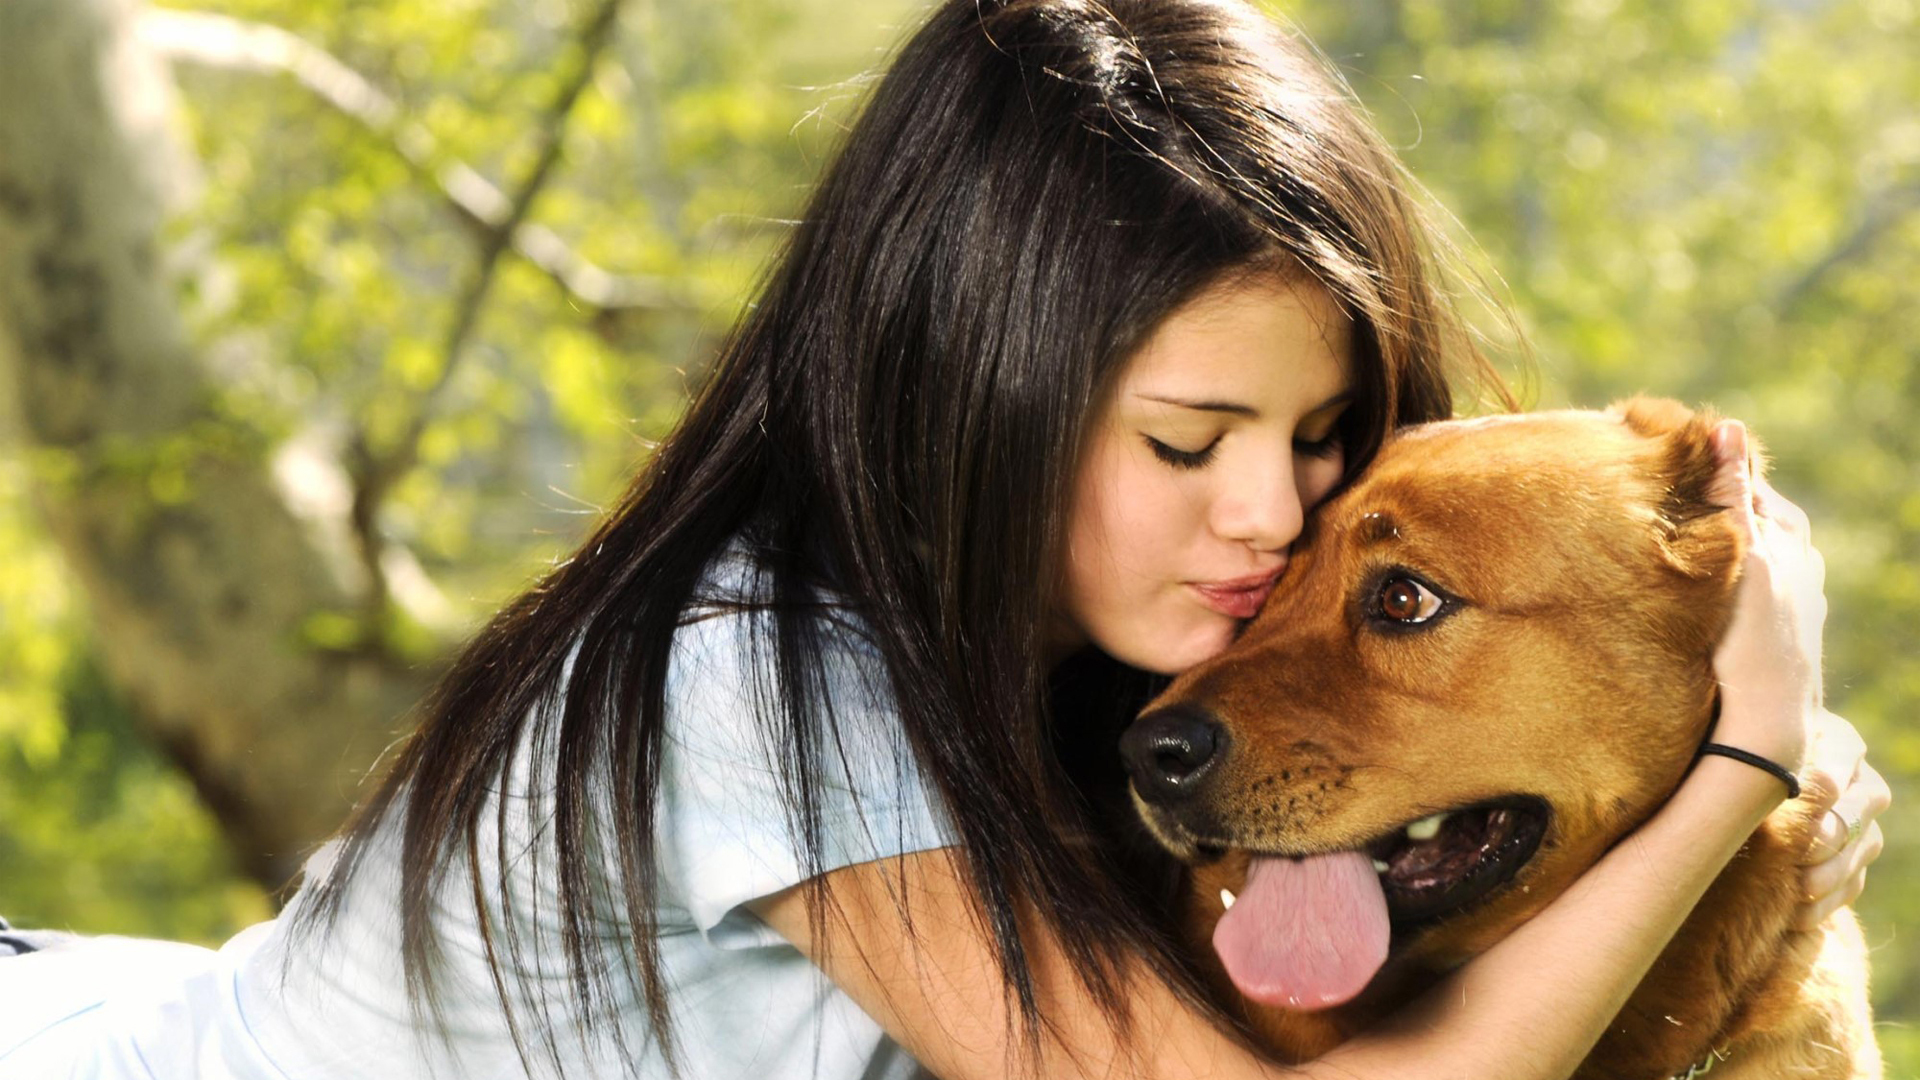 Amazing Selena Gomez Lovely Still With Dog Background Mobile Desktop Free Hd Pictures